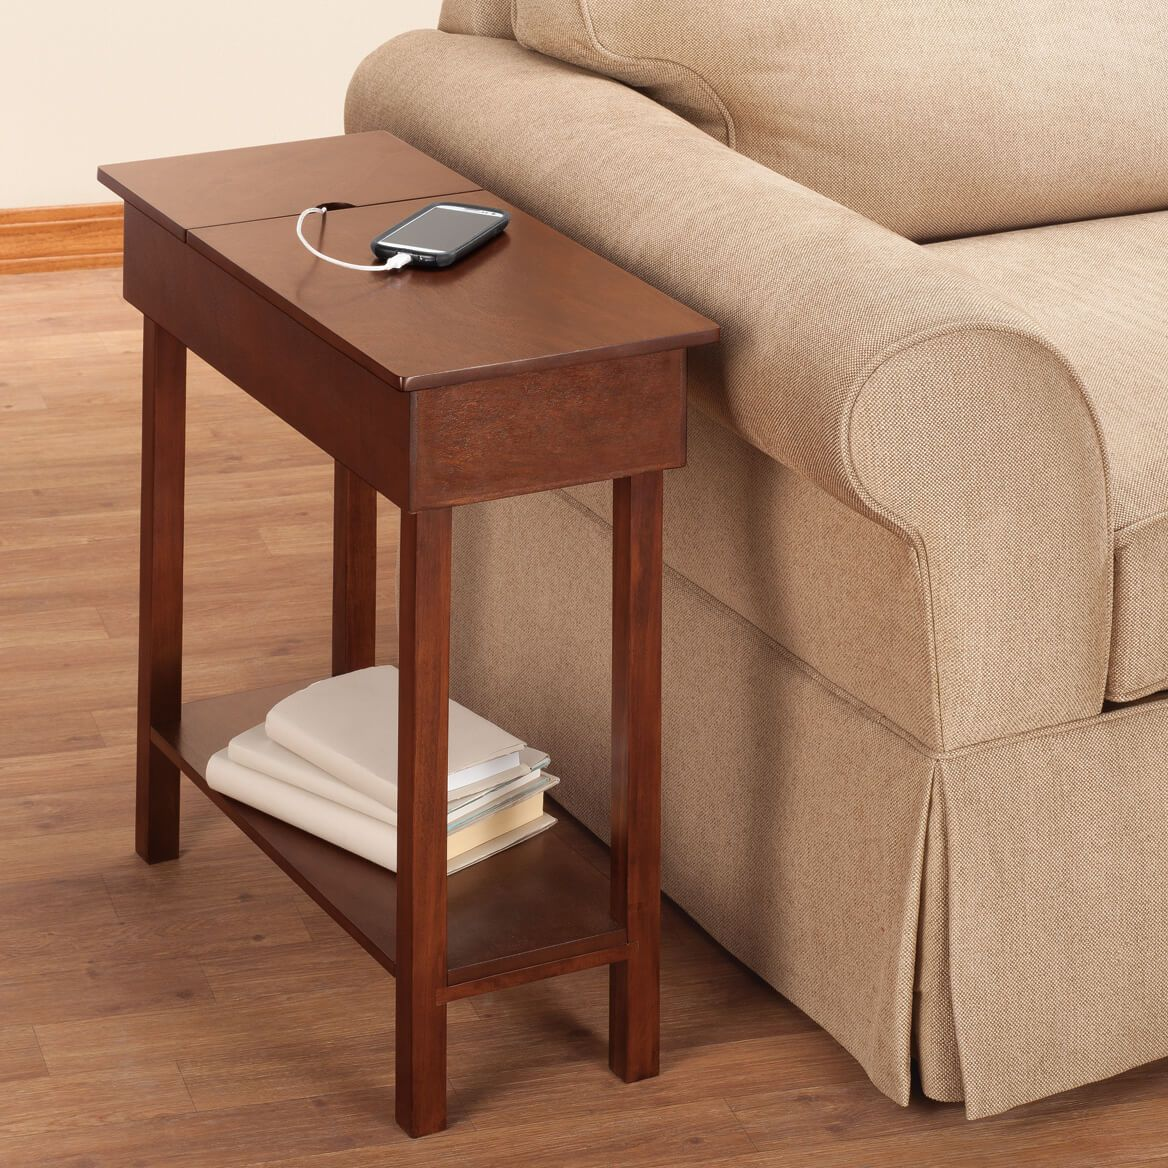 Miles Kimball Chairside Table with USB Power Strip by OakRidge Accents features a power strip with three 3-prong outlets and two USB ports built-in.